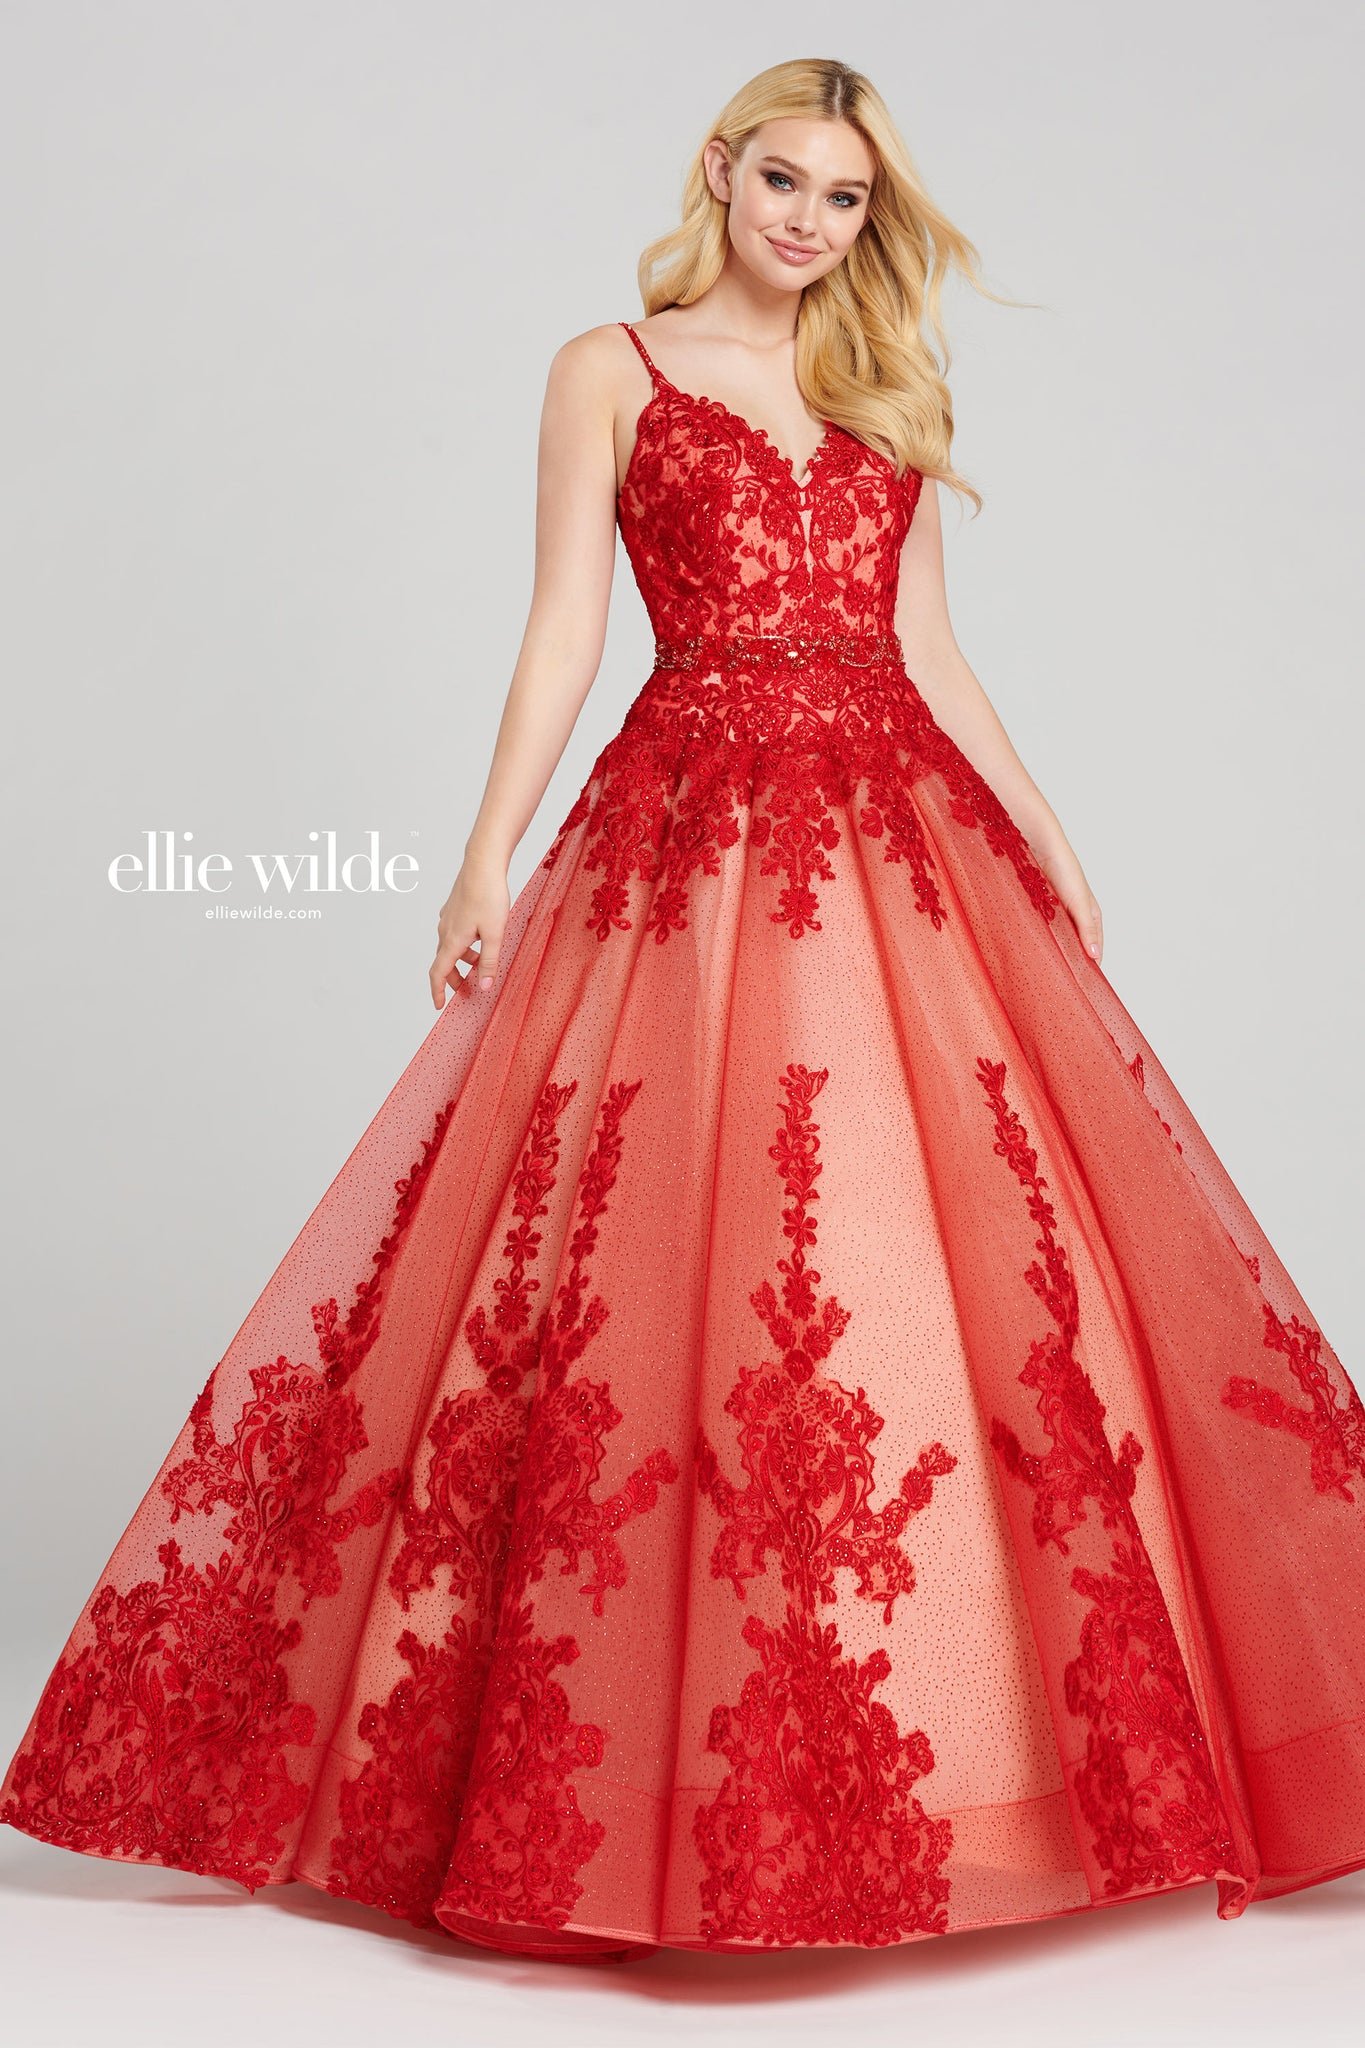 Ellie Wilde Red Lace Ball Gown - Gissings Boutique